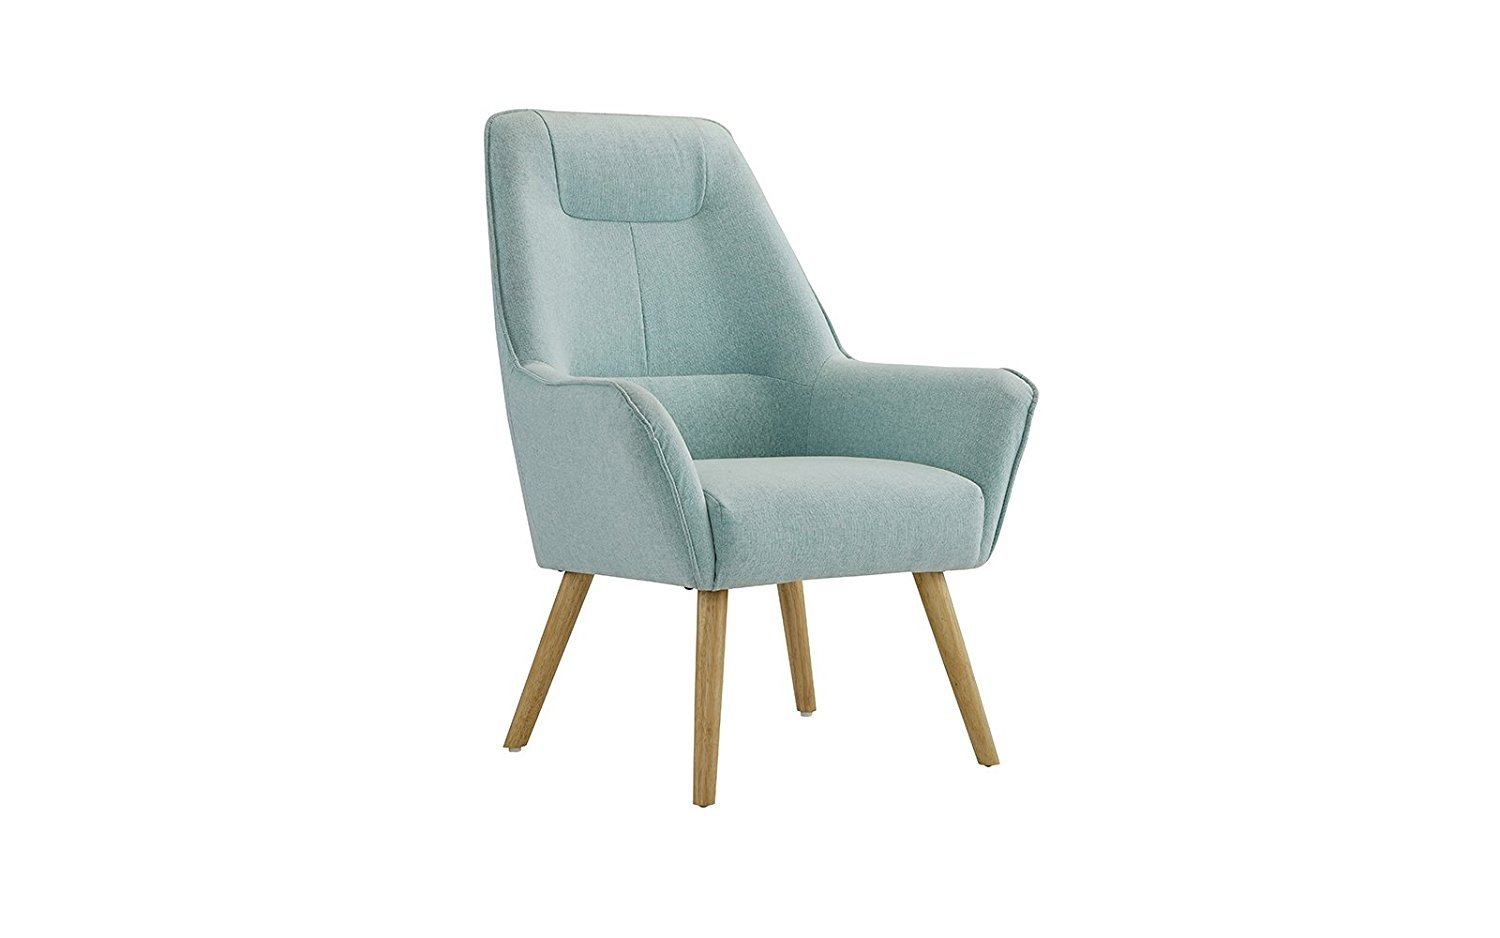 Modern Upholstered Linen Arm Chair With Natural Wooden